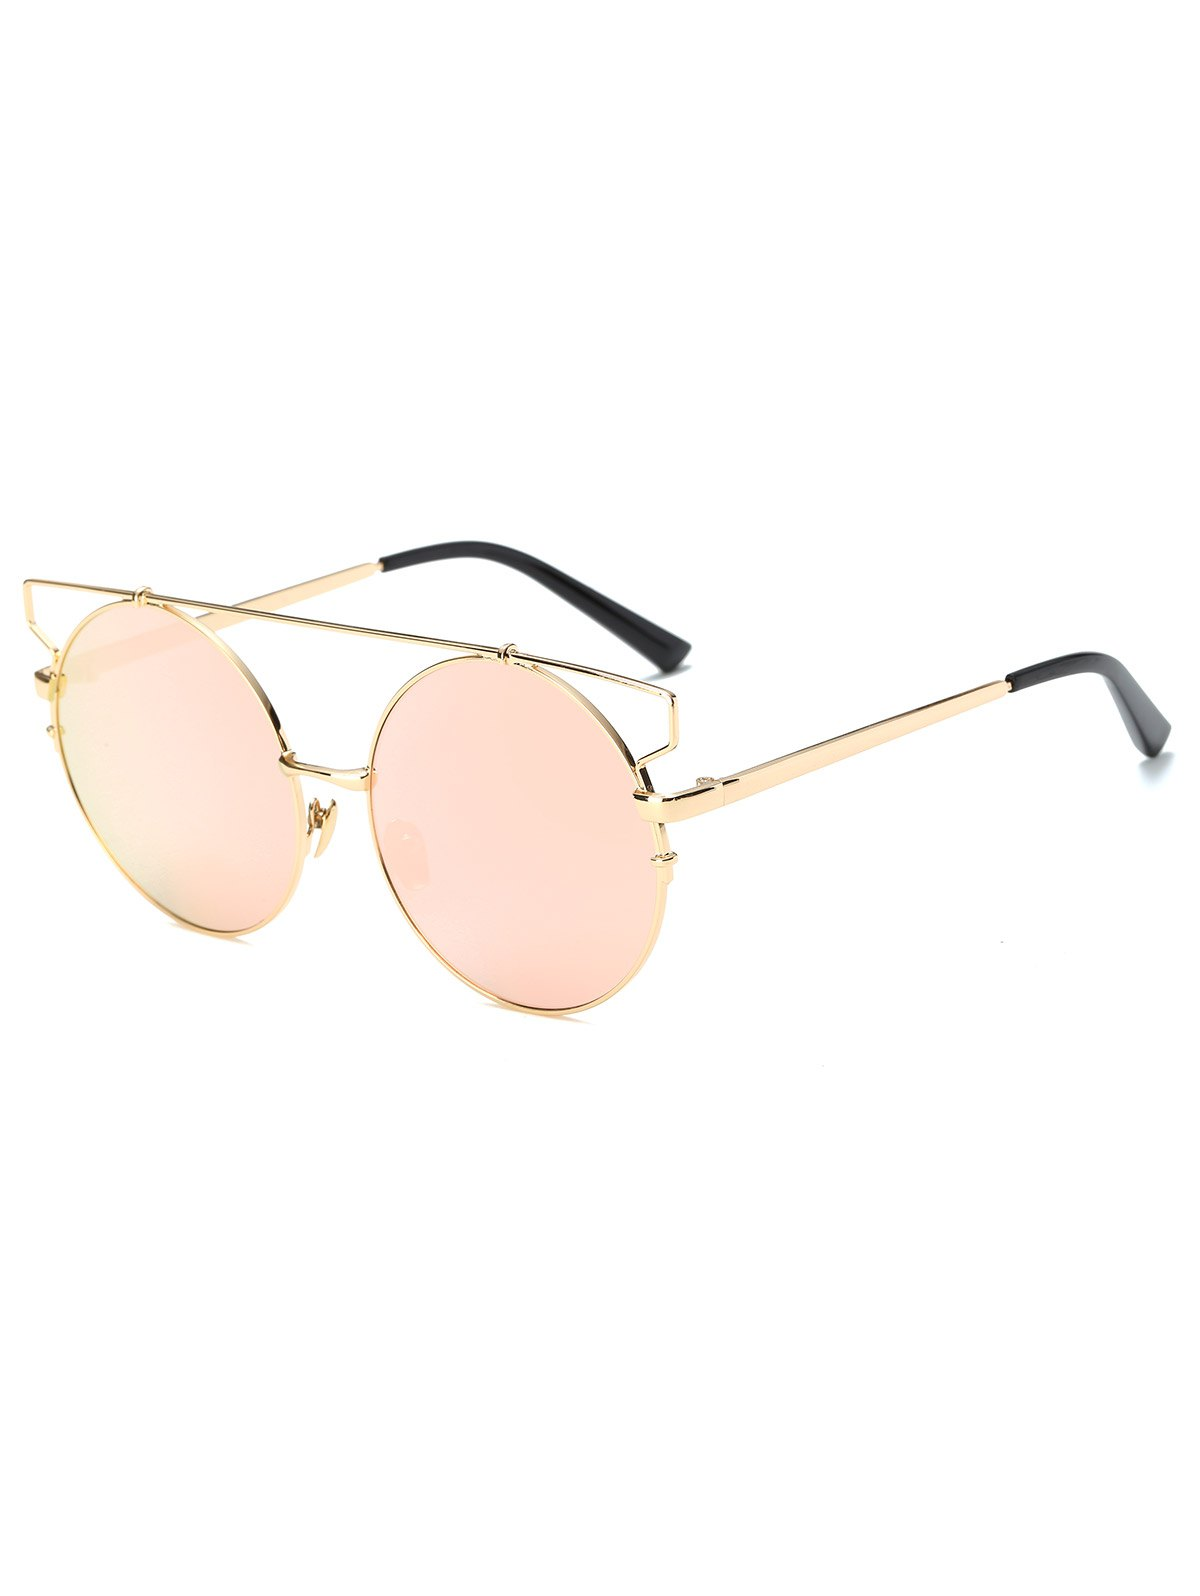 Metal Round Mirrored Sunglasses